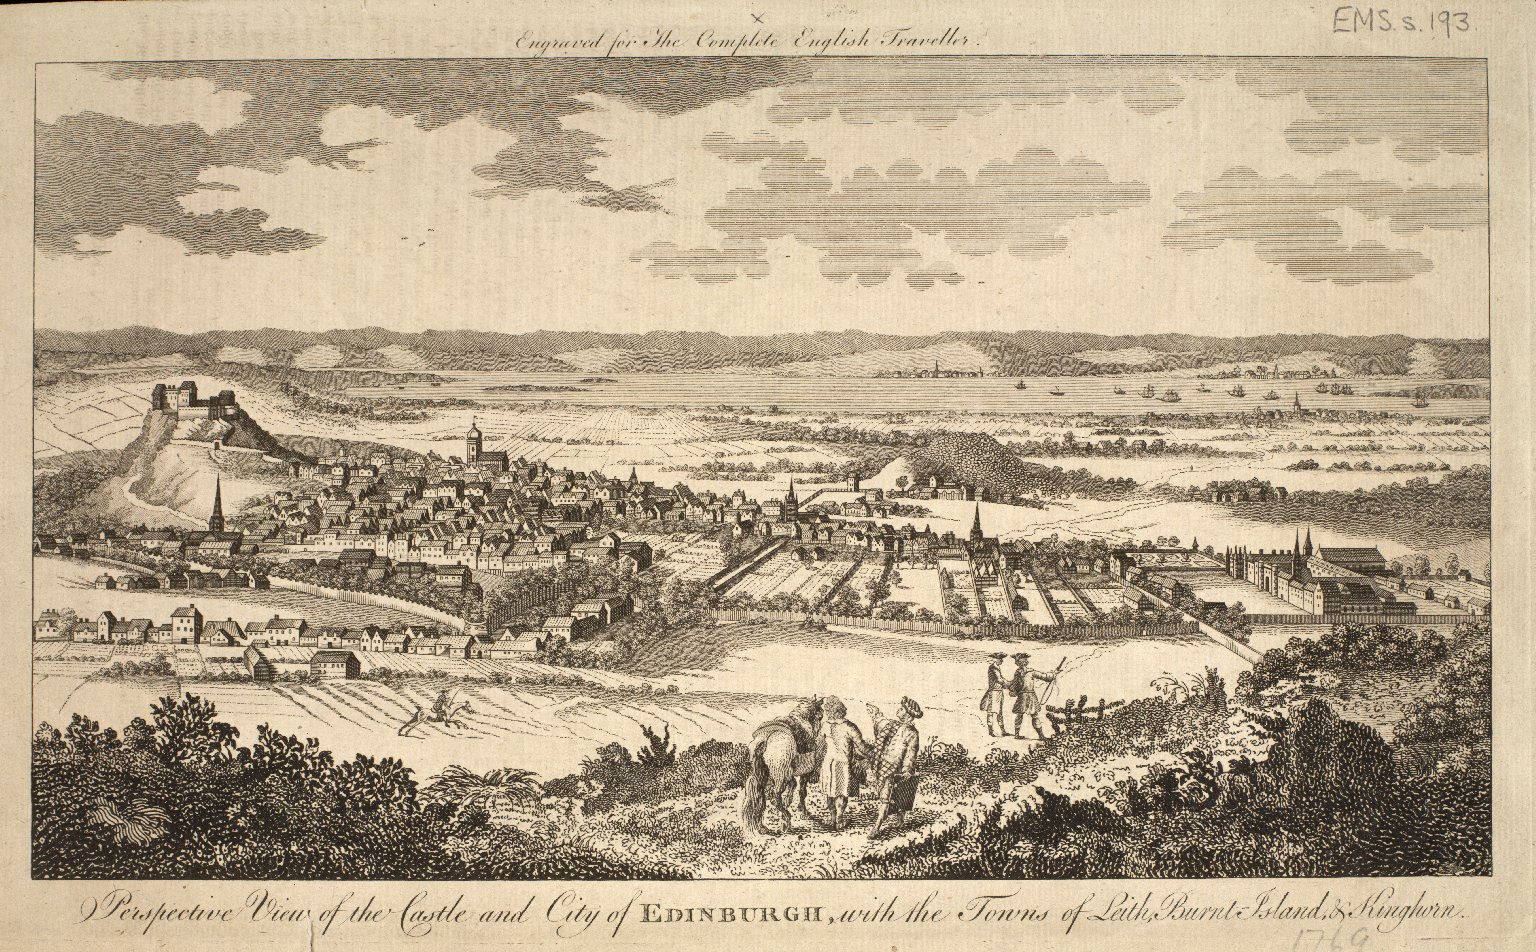 Perspective View of the Castle and City of Edinburgh, with the Towns of Leith, Burnt Island & Kinghorn. [1 of 1]